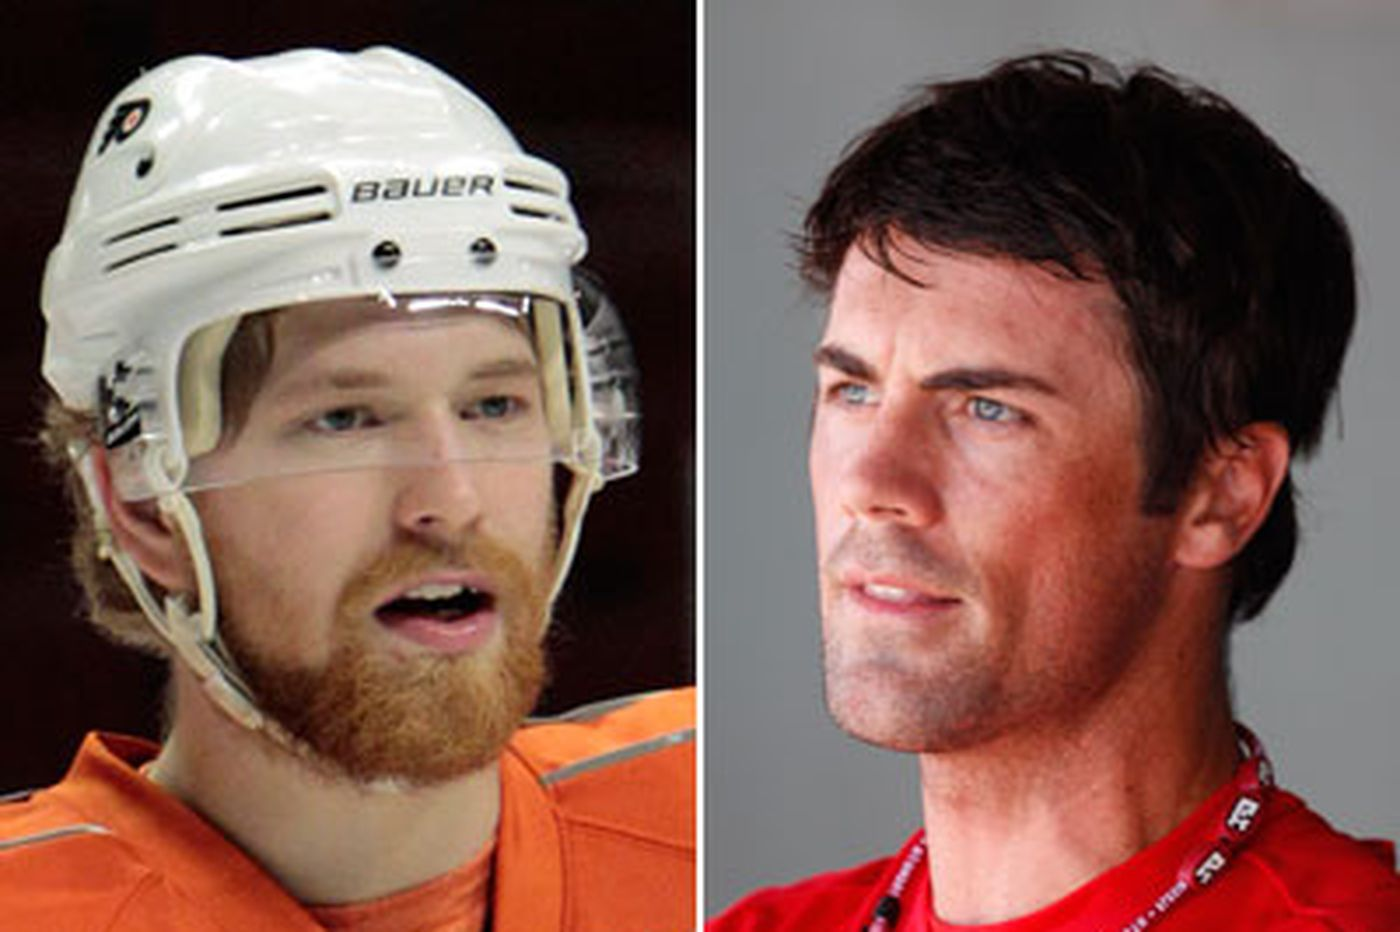 Sam Donnellon: Hamels, Giroux: To tell truth, lying preferred